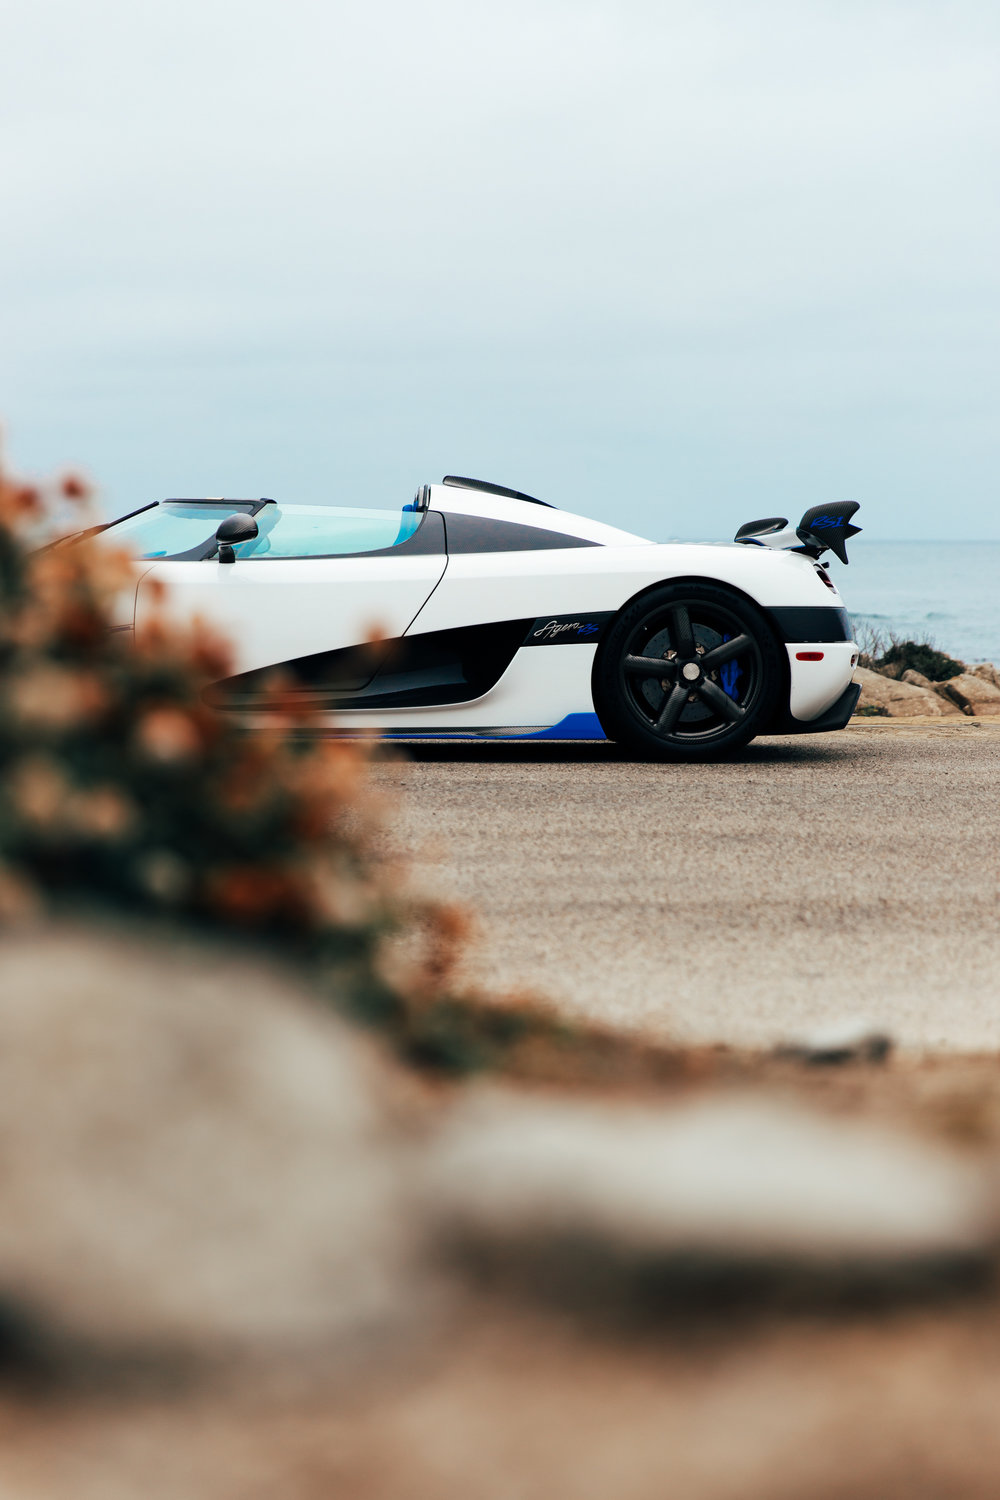 Stay_Driven_Monterey_Car_Week_Whitesse_Koenigsegg-19.jpg